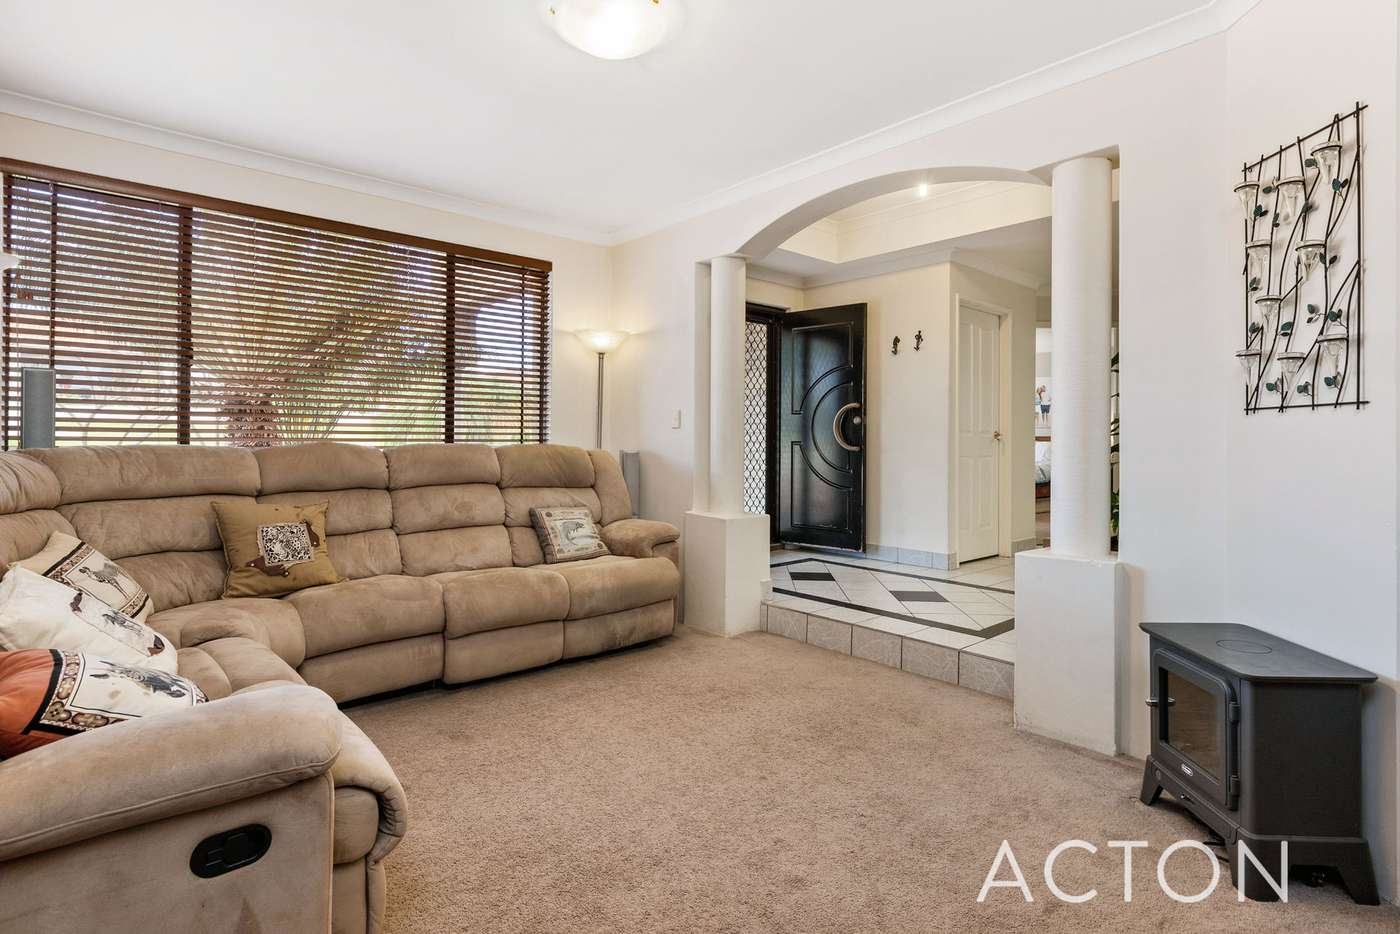 Sixth view of Homely house listing, 3 Luttrell Gardens, Beeliar WA 6164